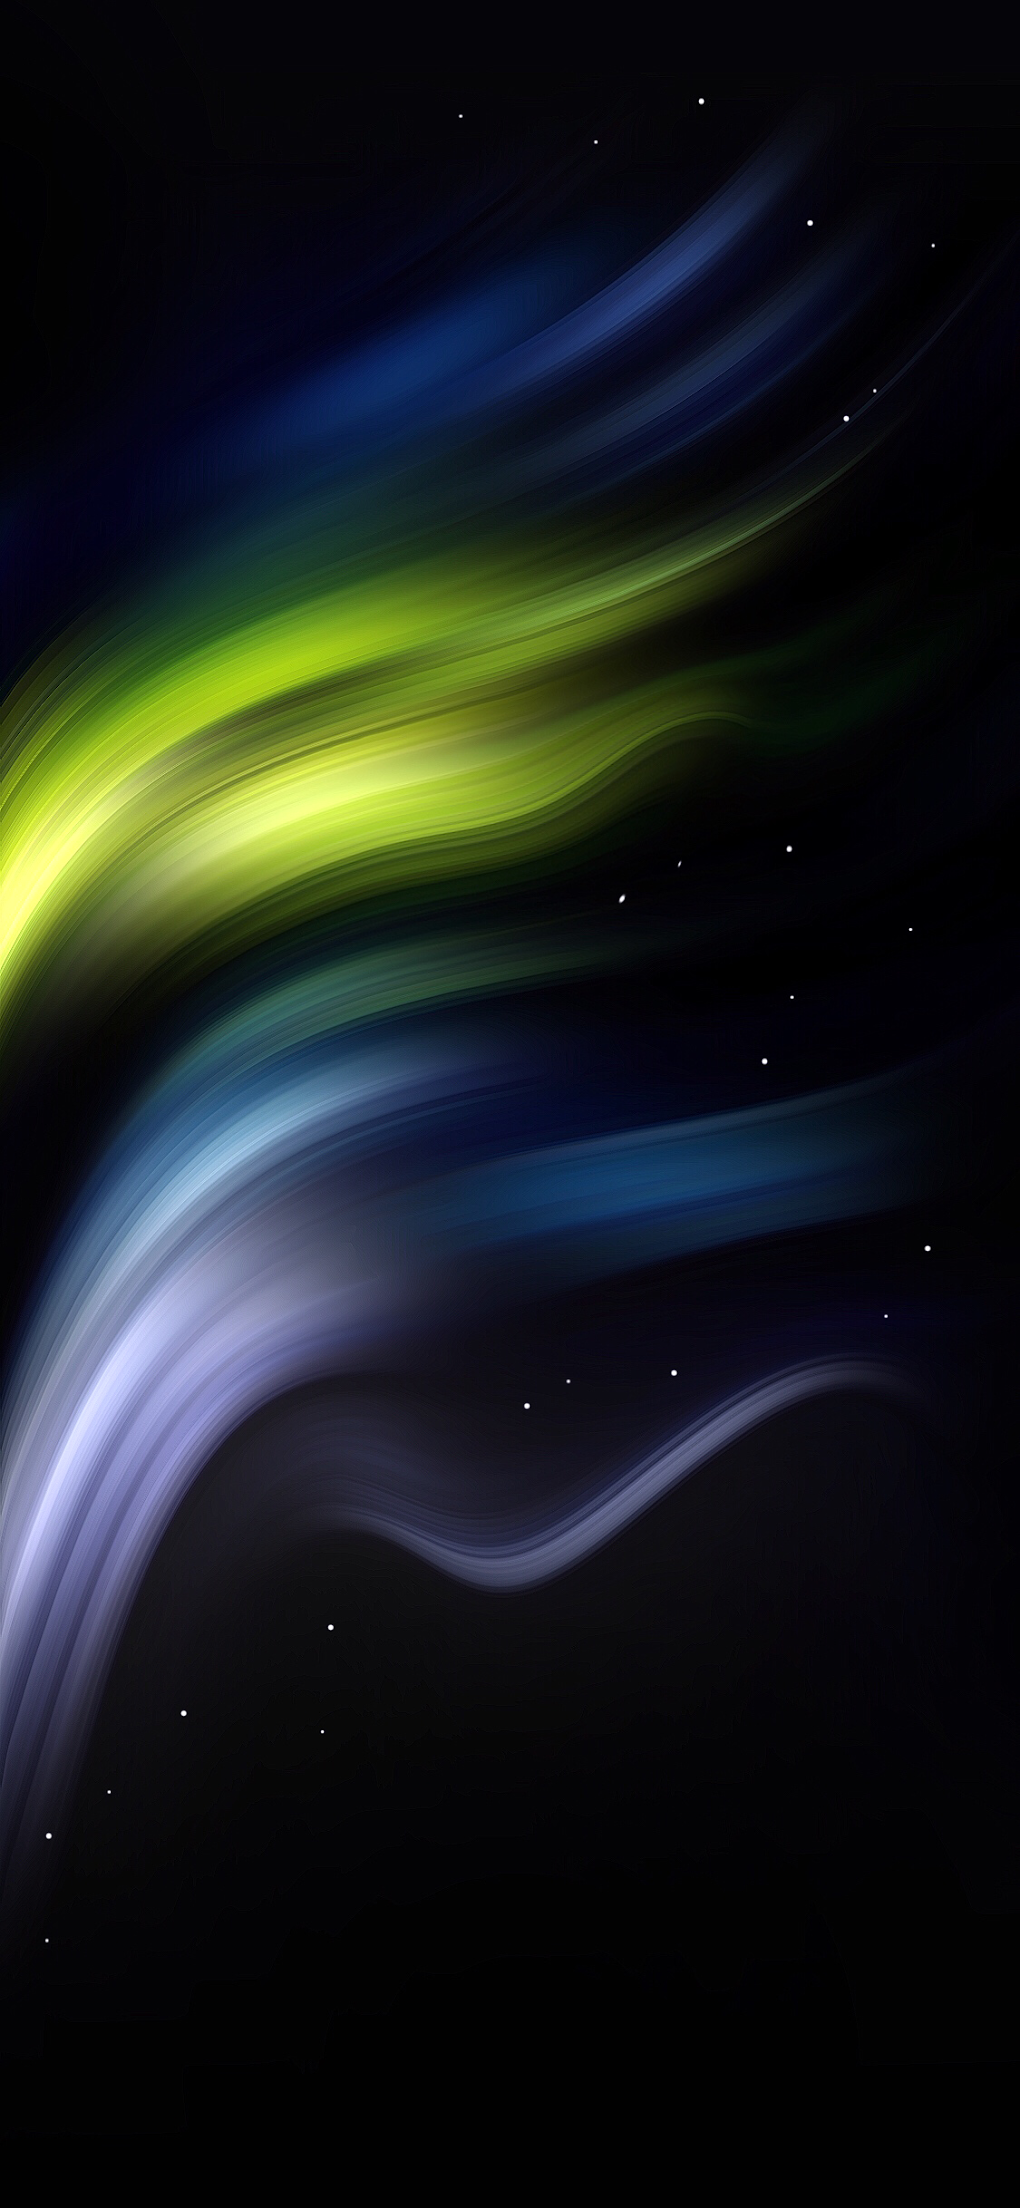 Green Blue And Purple In Space Zollotech Wallpaper Iphone